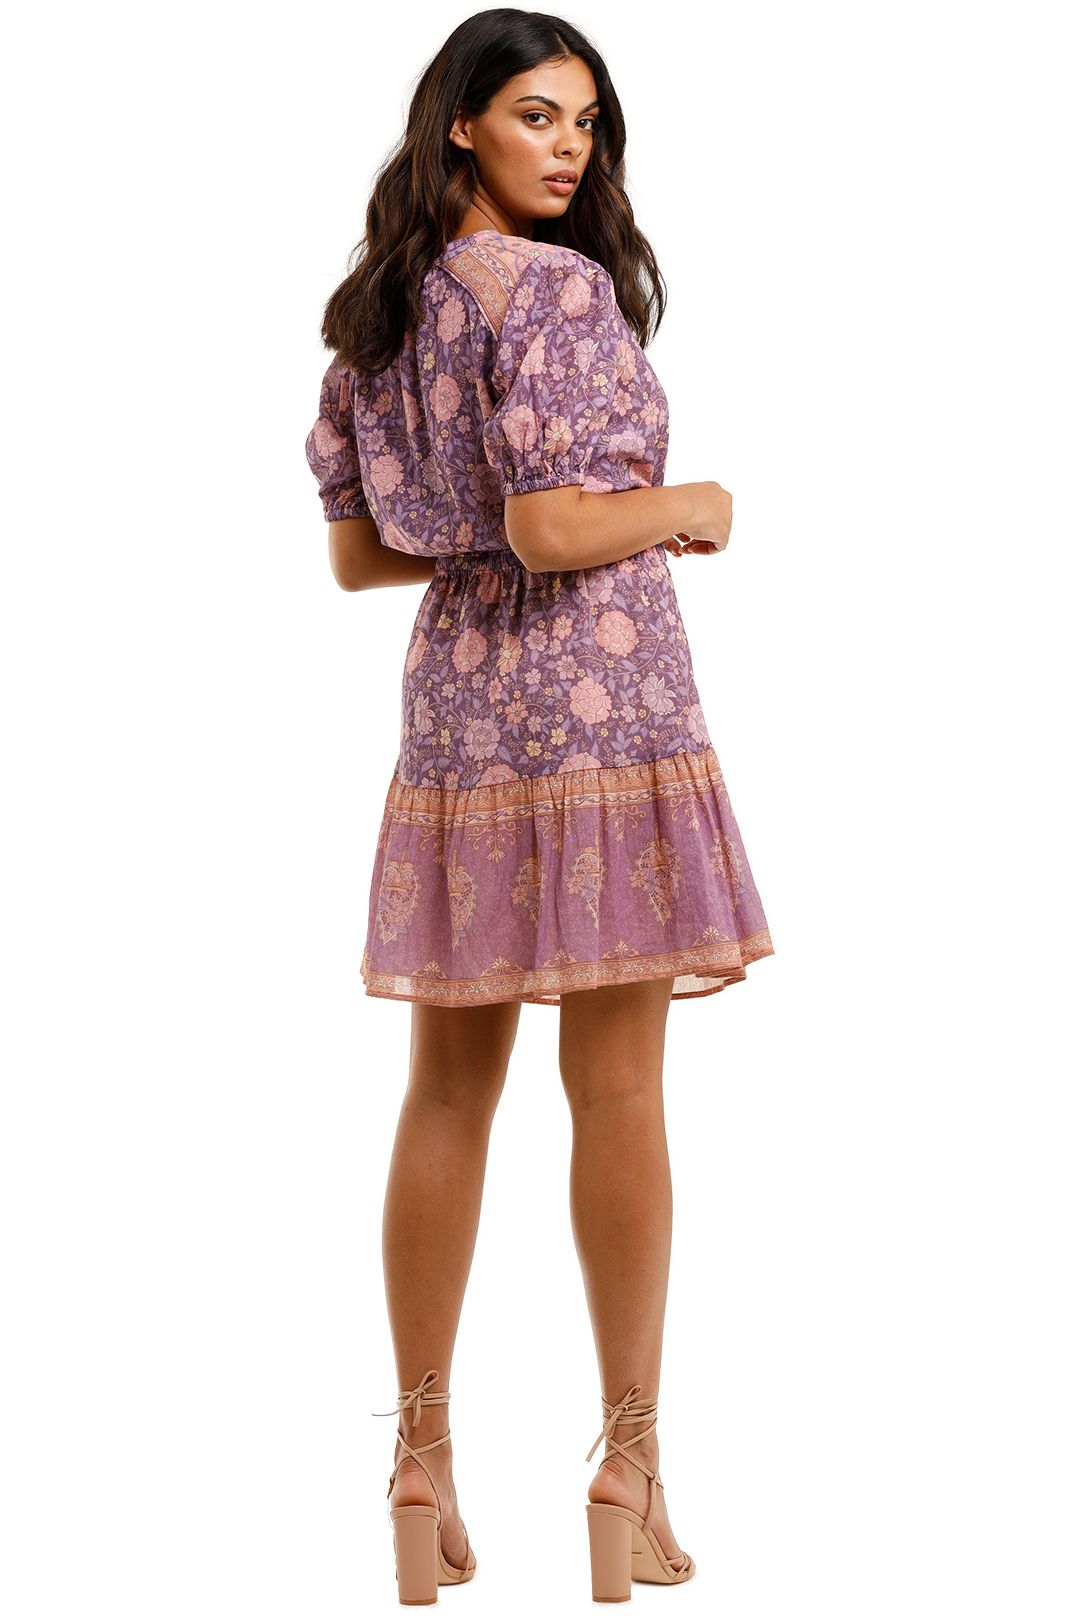 Spell Love Story Playdress Royal Lilac Floral